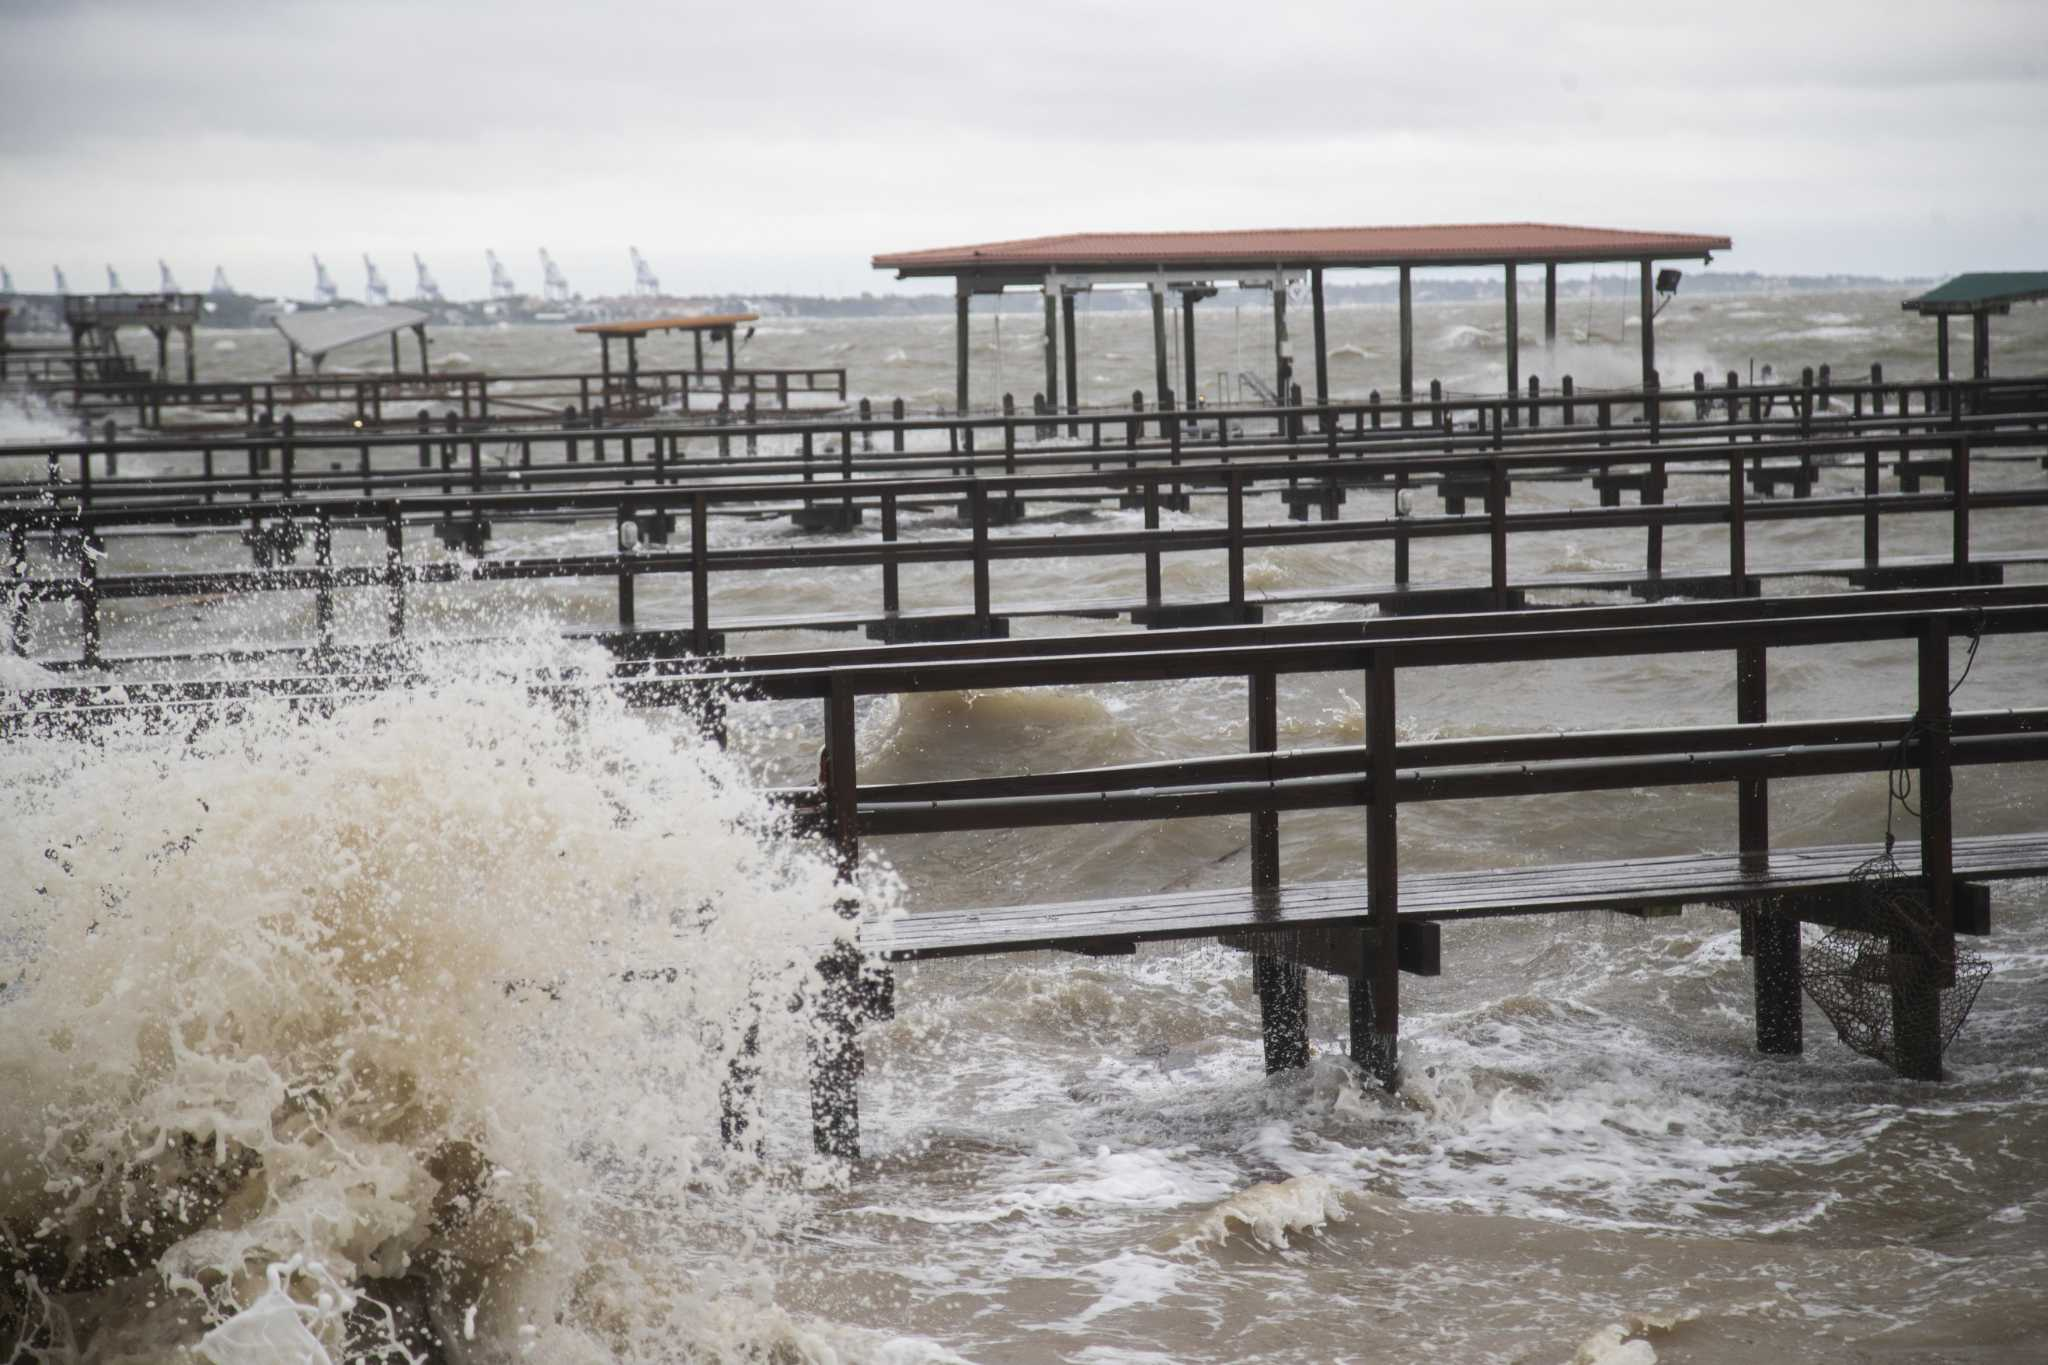 Part of Galveston's 61st Street Pier, a popular fishing spot, washed up on a nearby beach